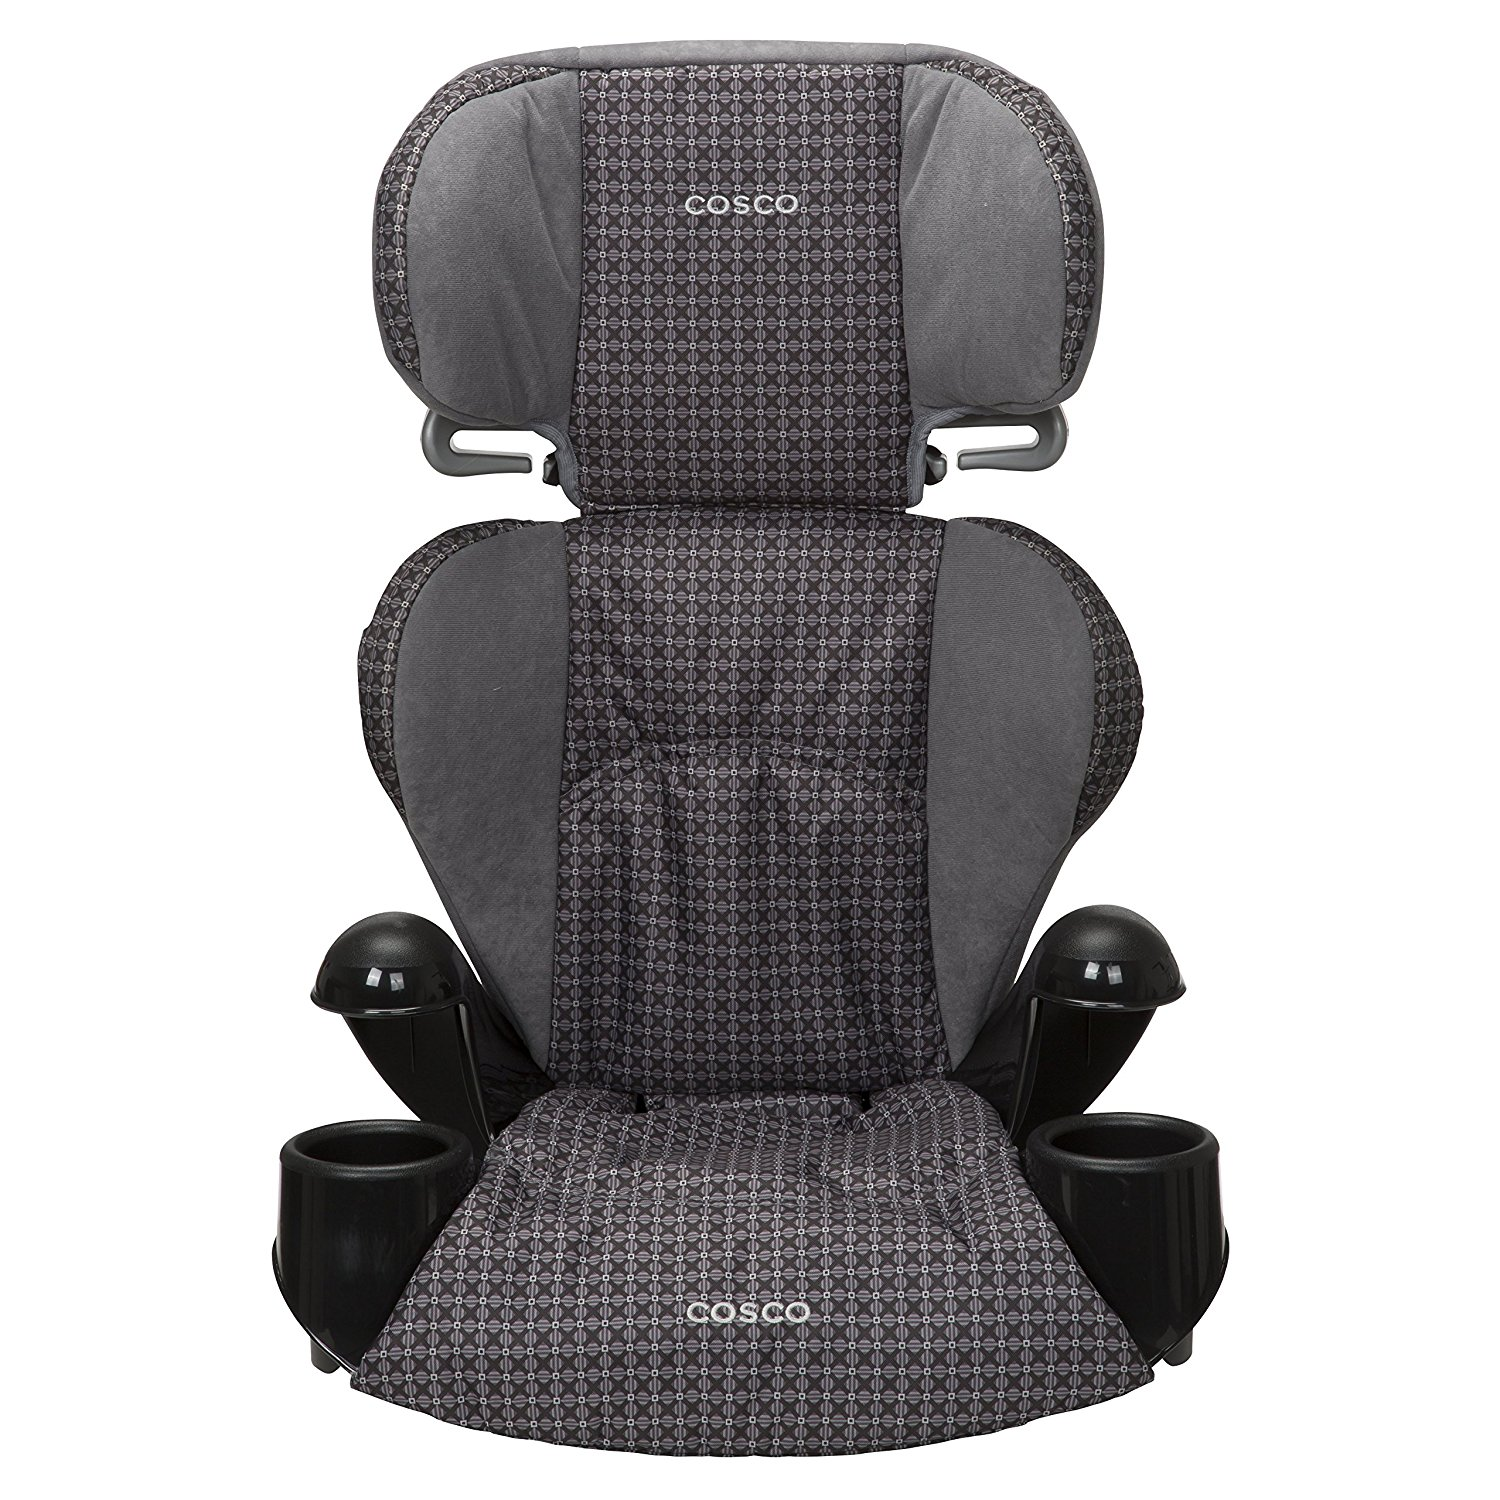 Pronto! Booster Car Seat for Children, Adjustable Headrest, Integrated Cup Holders, Emerson, COMFY BOOSTER SEAT – This belt-positioning booster seat can.., By Cosco Ship from US